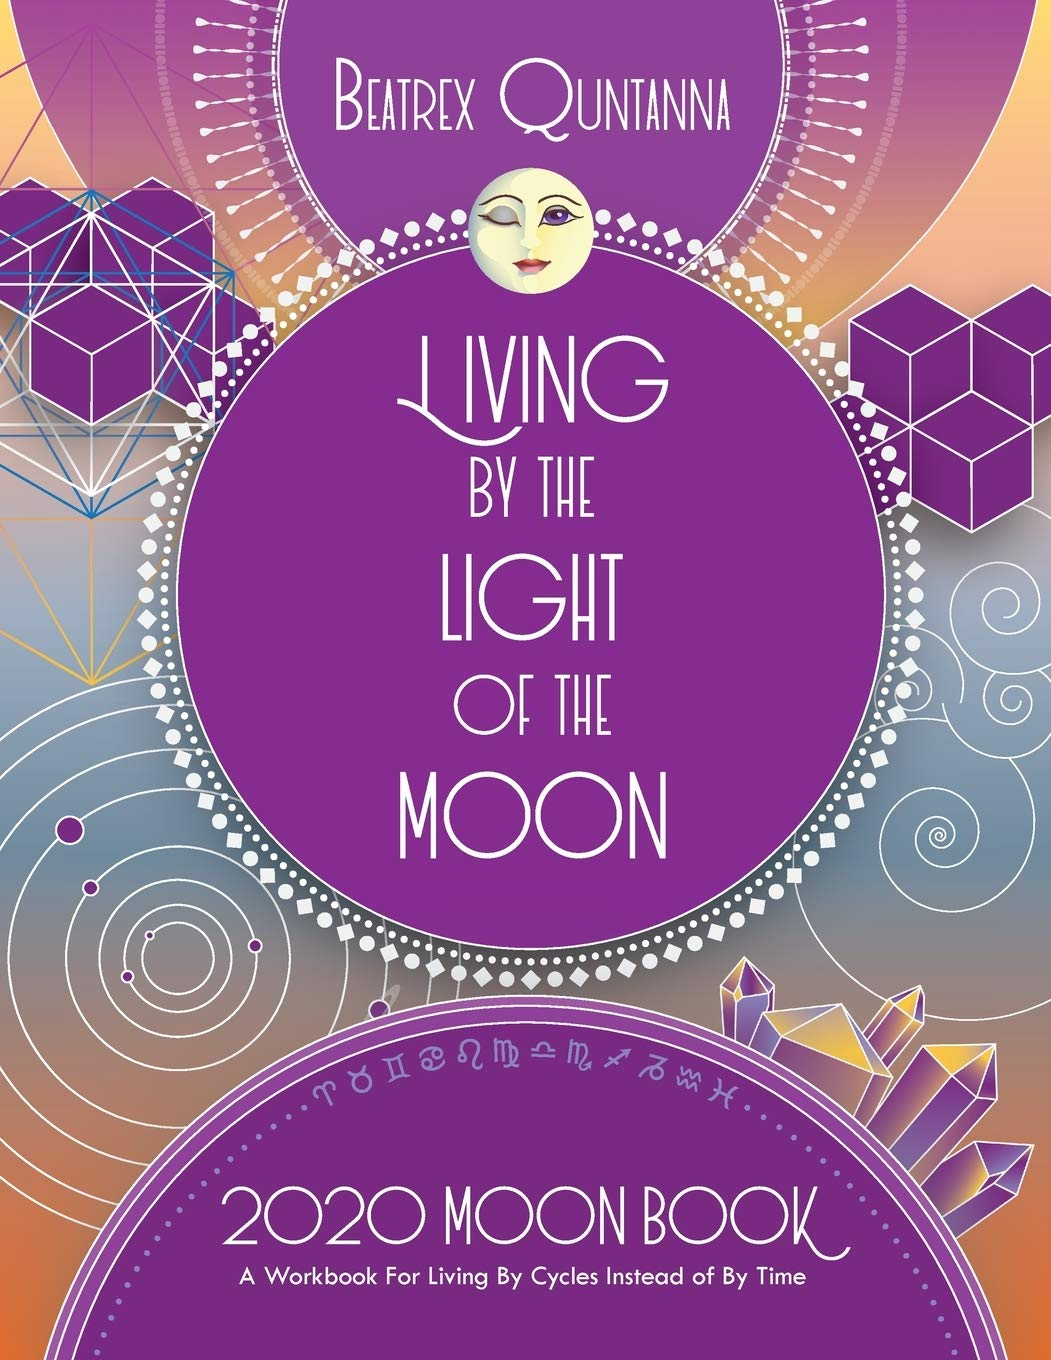 Living by the Light of the Moon: 2020 Moon Book by Beatrex Quntanna